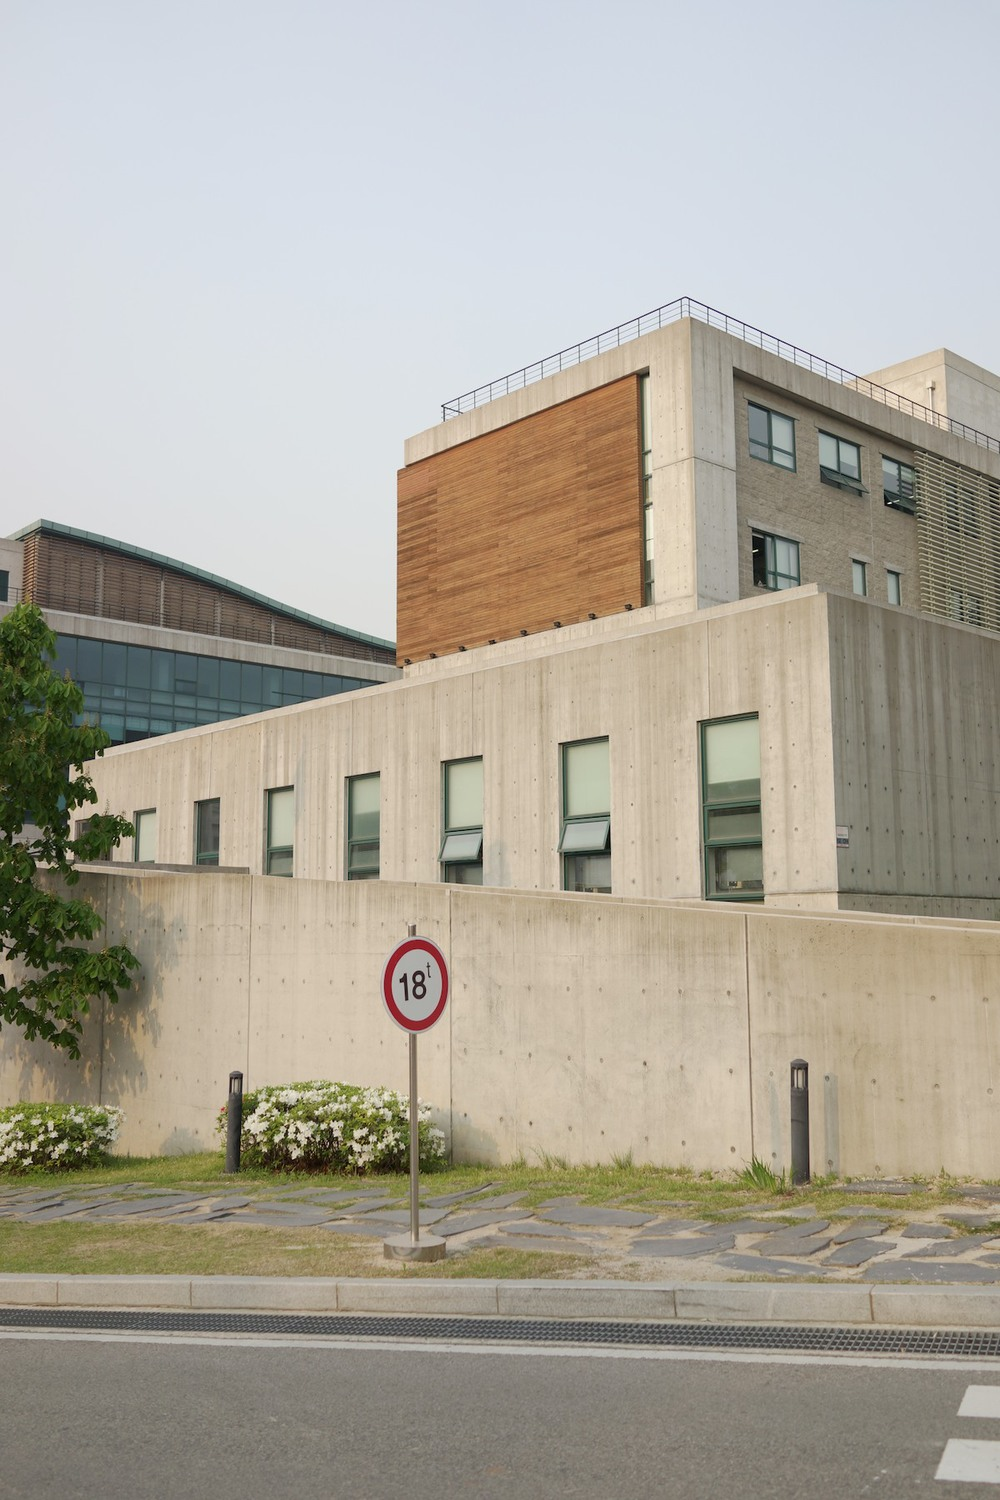 The Korean National University of Arts (한국예술종합학교).